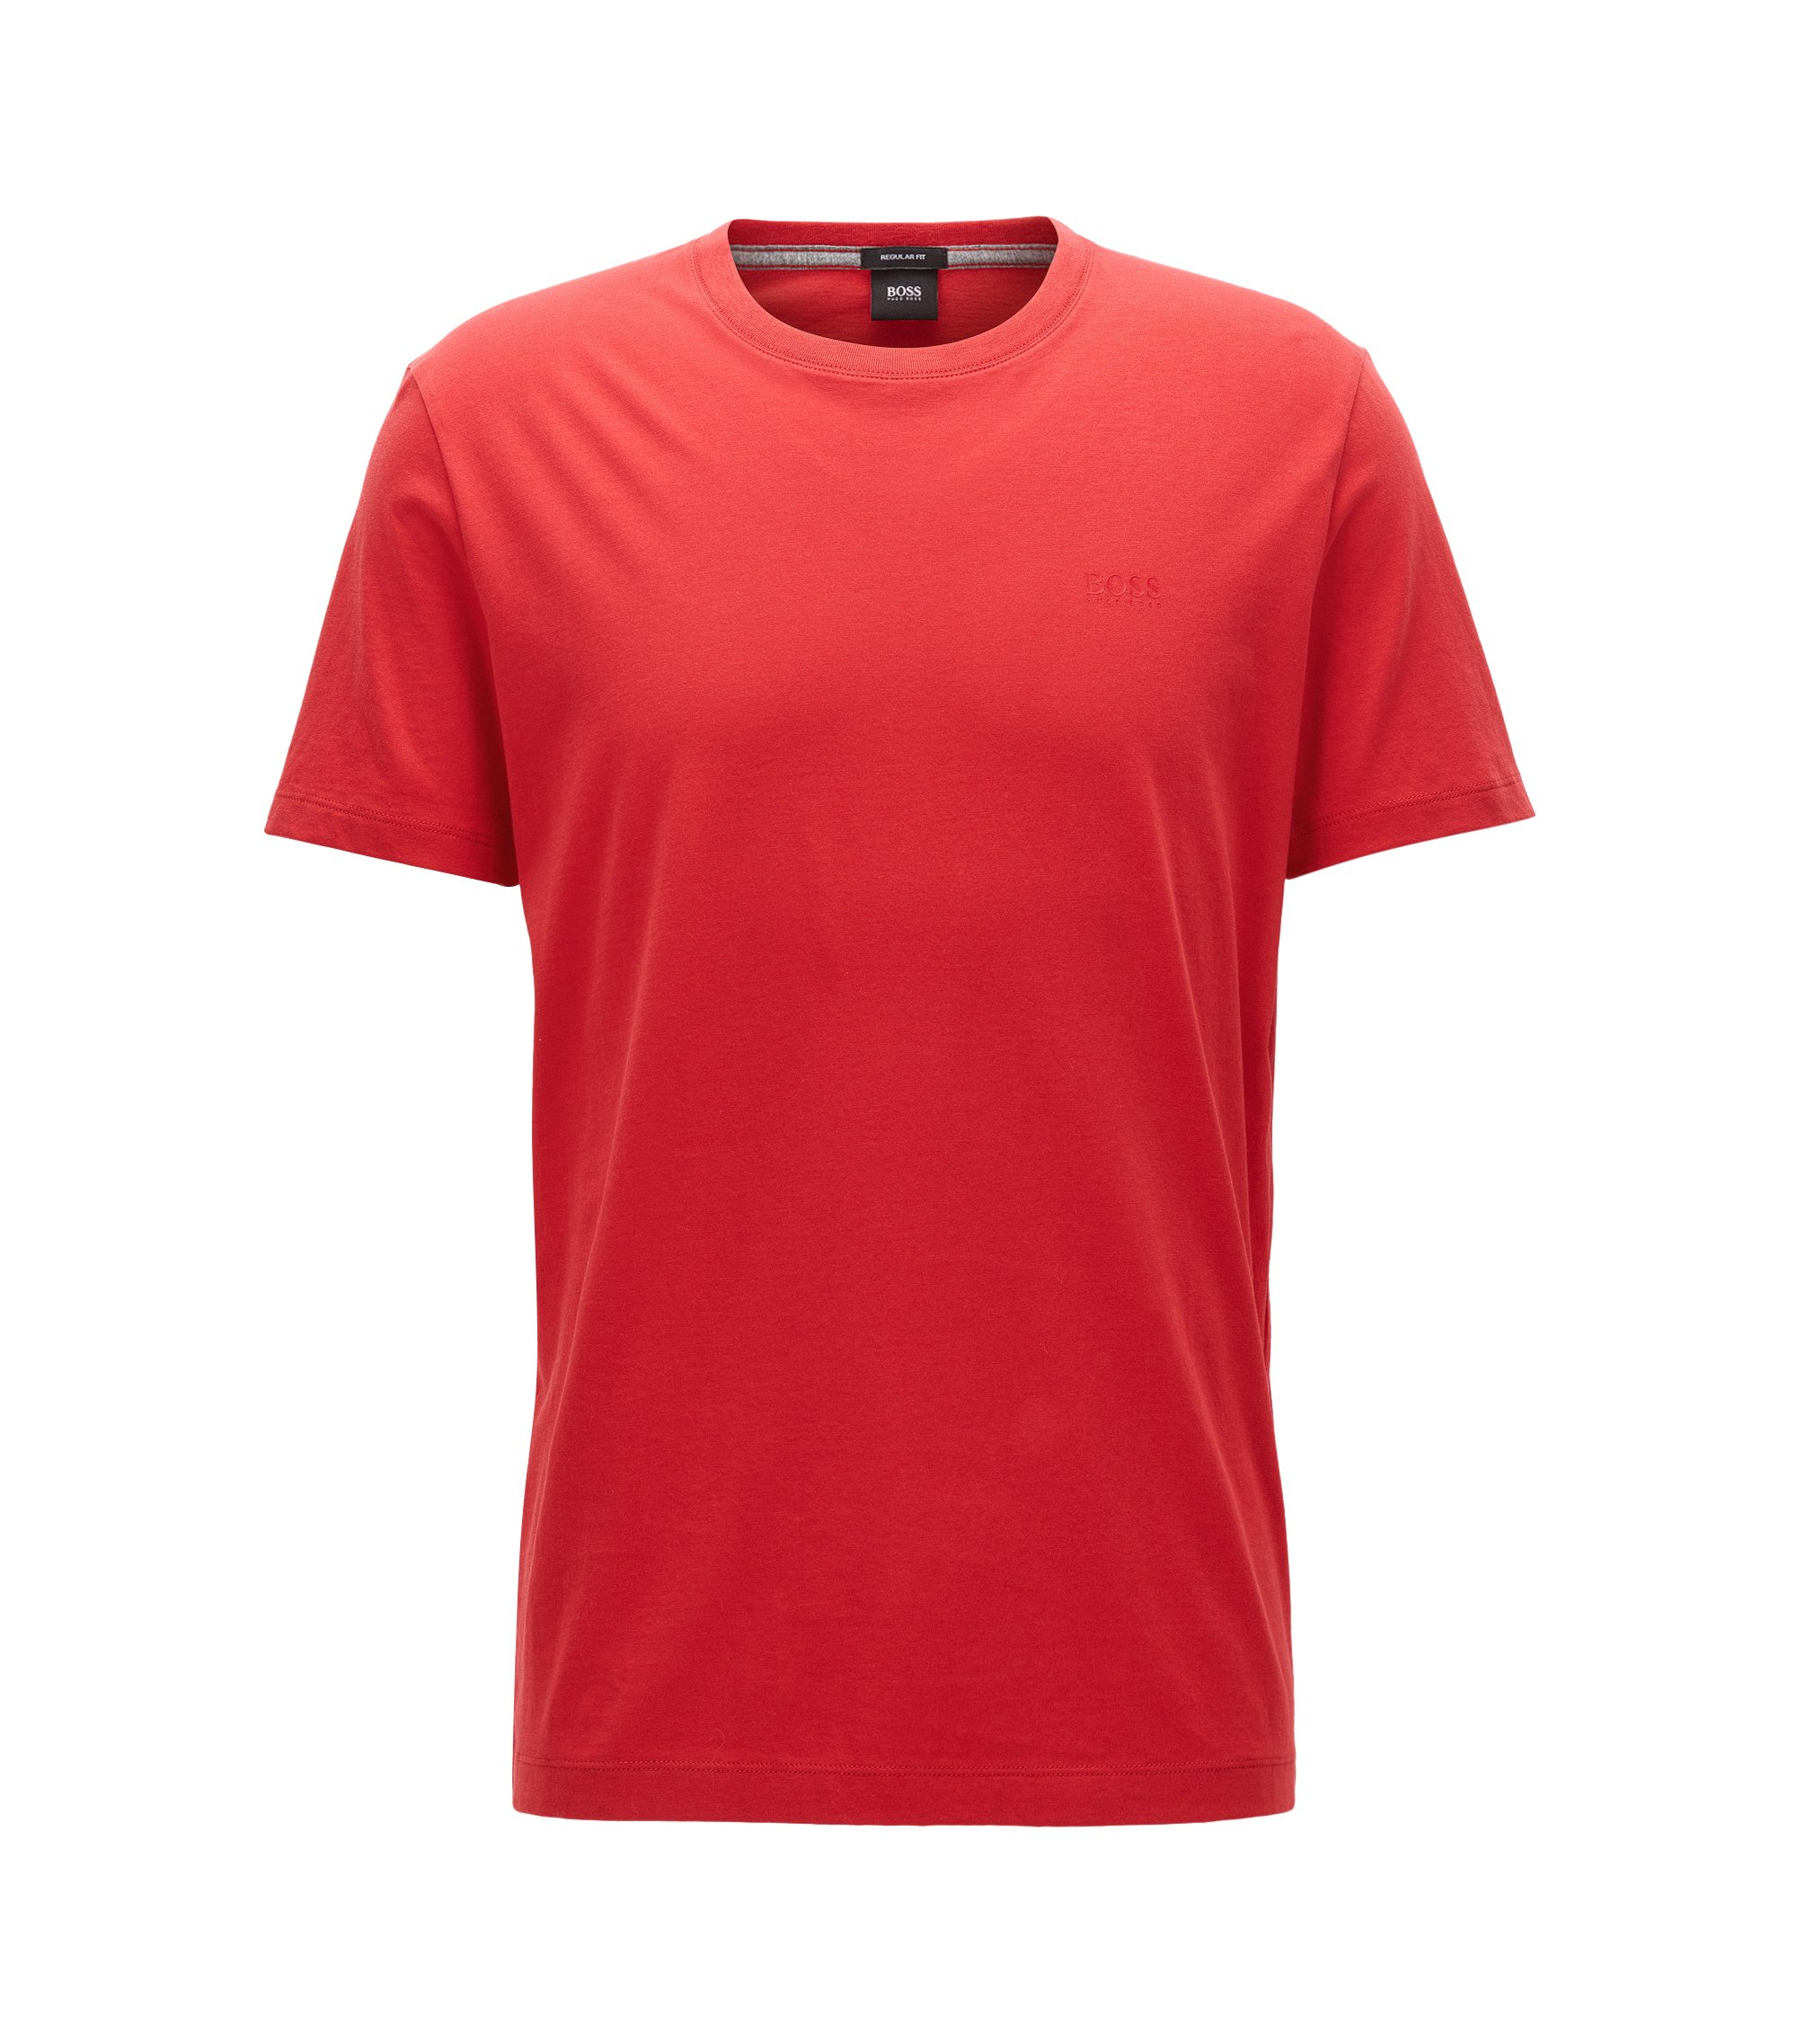 Regular-Fit T-Shirt aus weicher Baumwolle, Rot